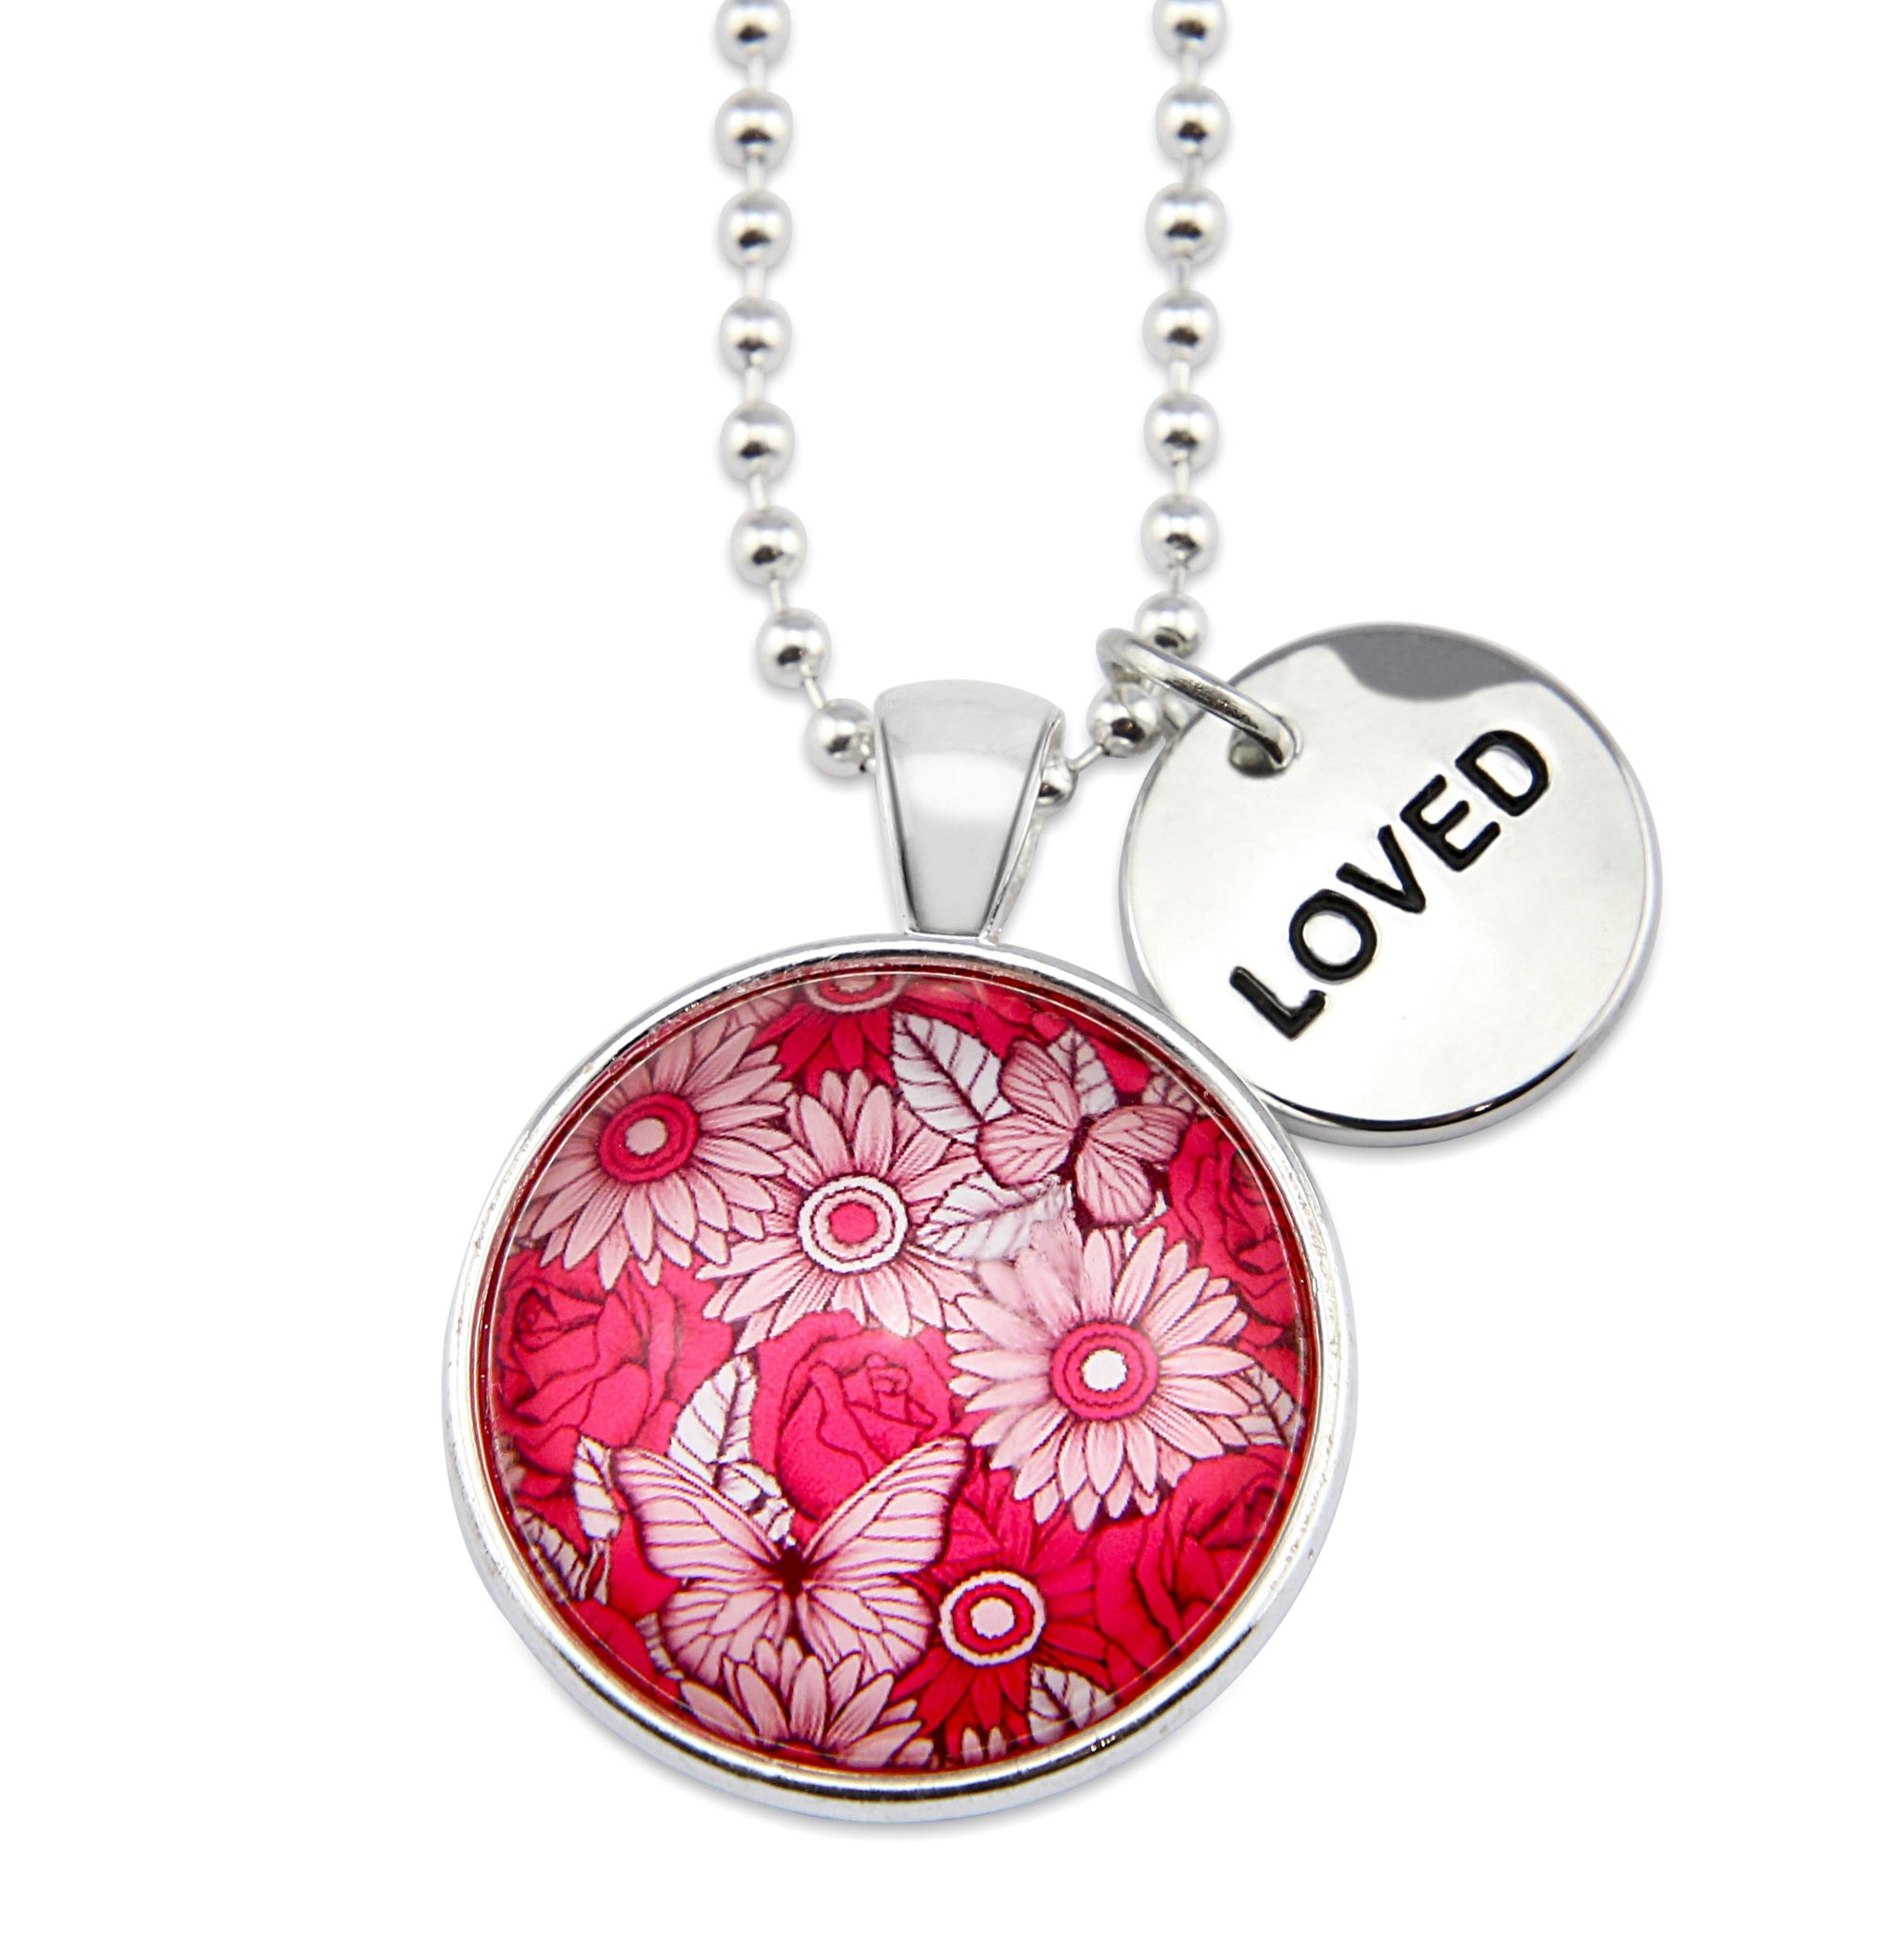 PINK COLLECTION - Bright Silver 'LOVED' Circle Necklace - Butterfly Patch (10411)